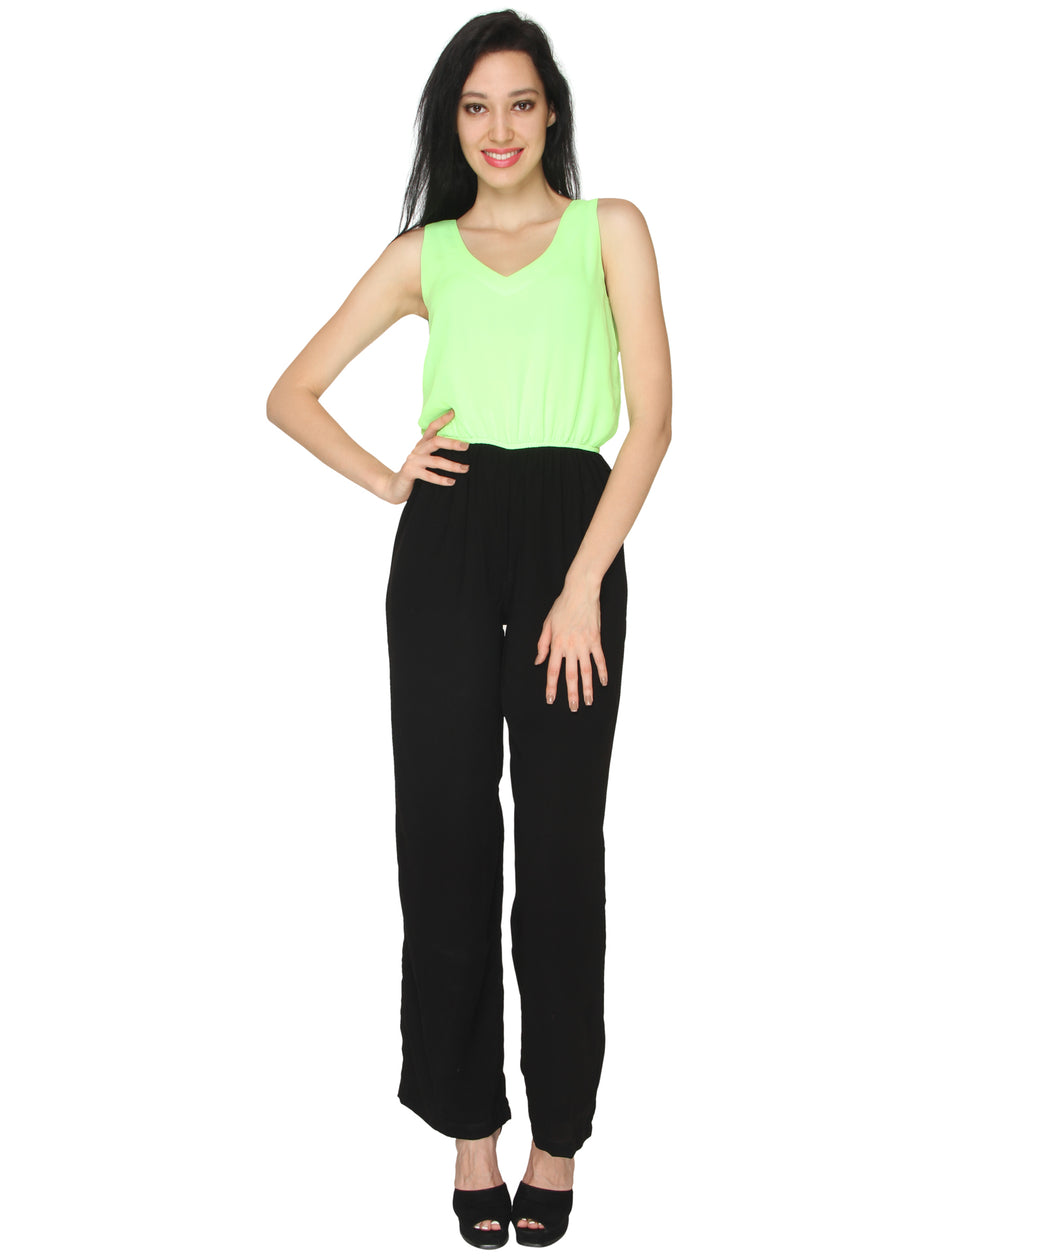 Neon Formal Jumpsuit